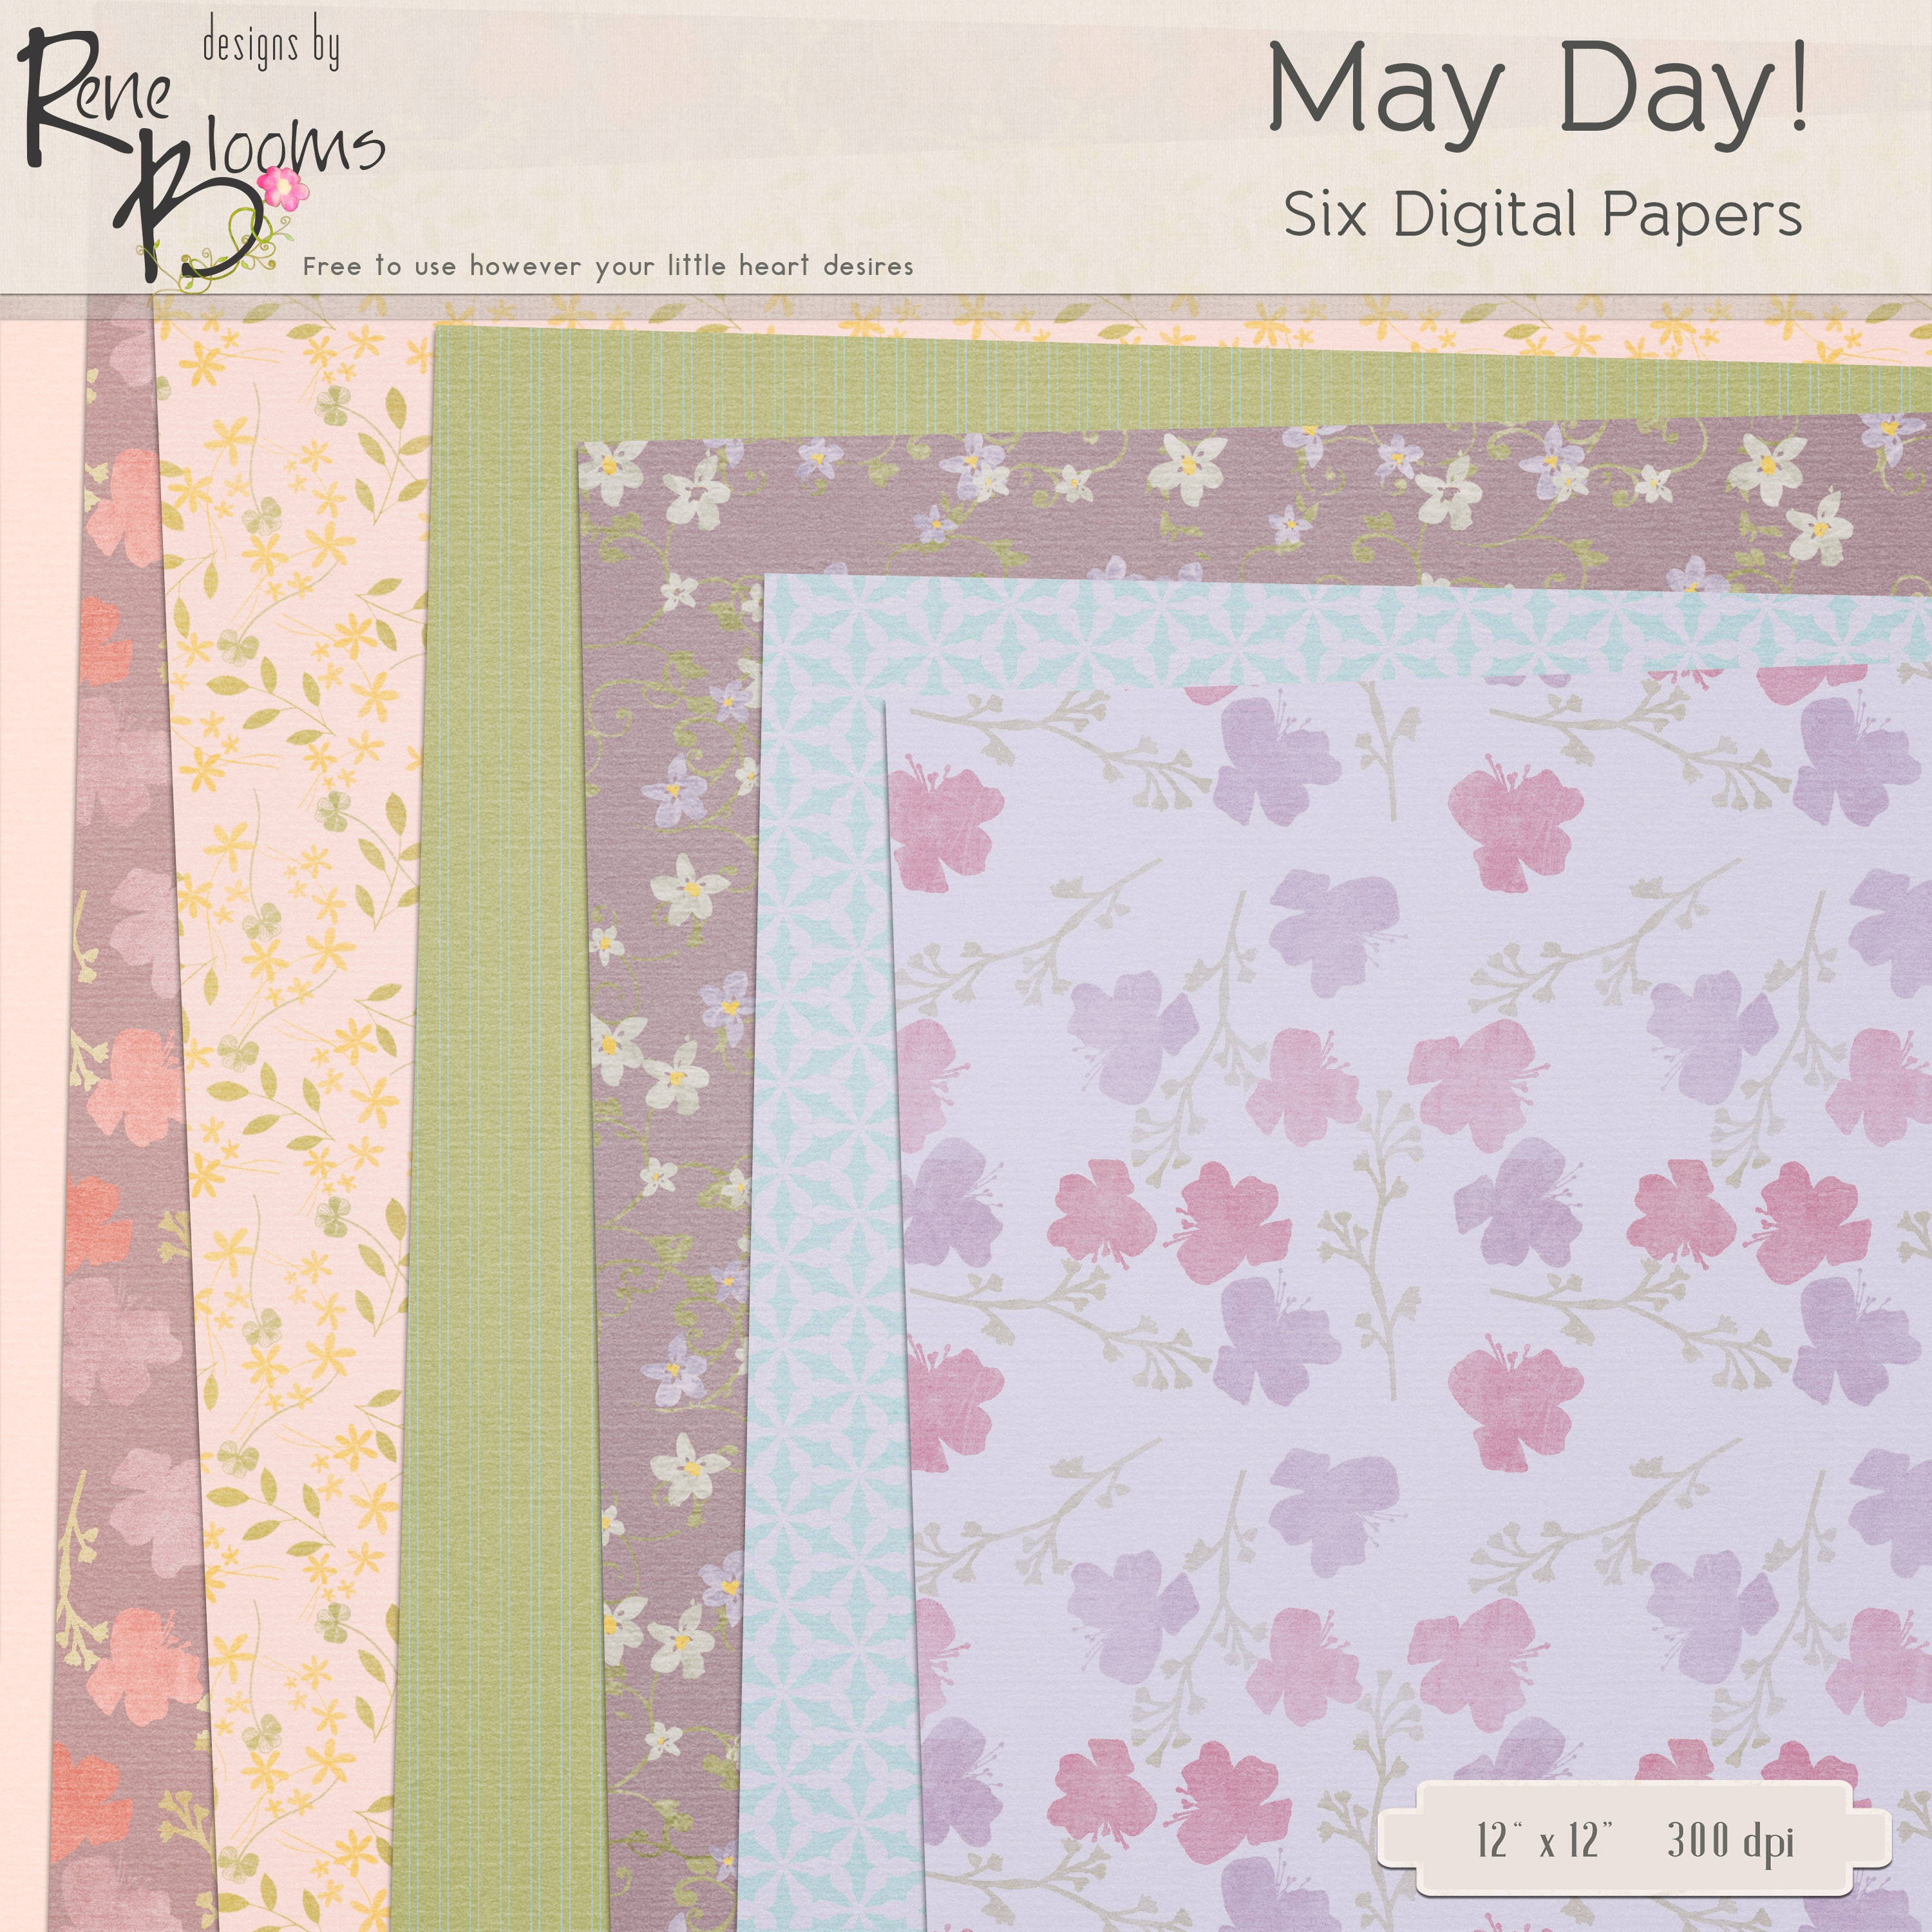 FREE Digital Paper Pack May Day by Rene Blooms